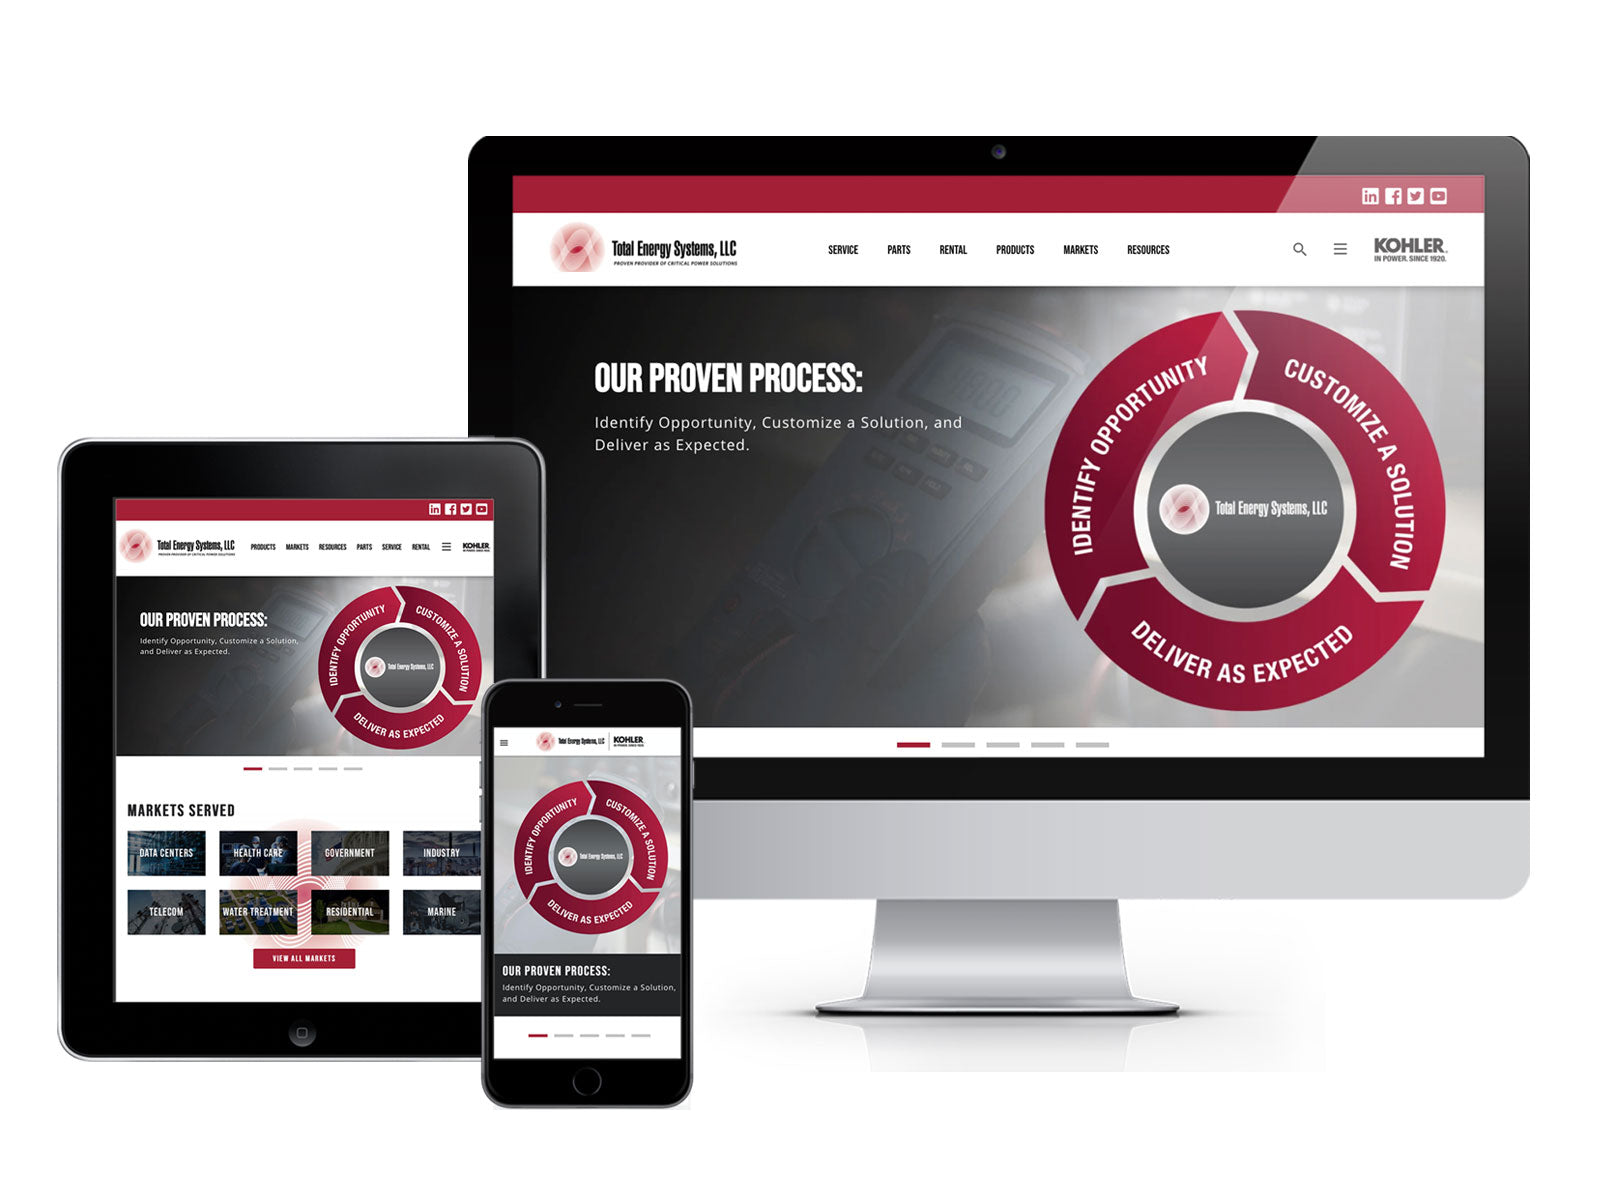 Total Energy Systems Launches New Corporate Website.